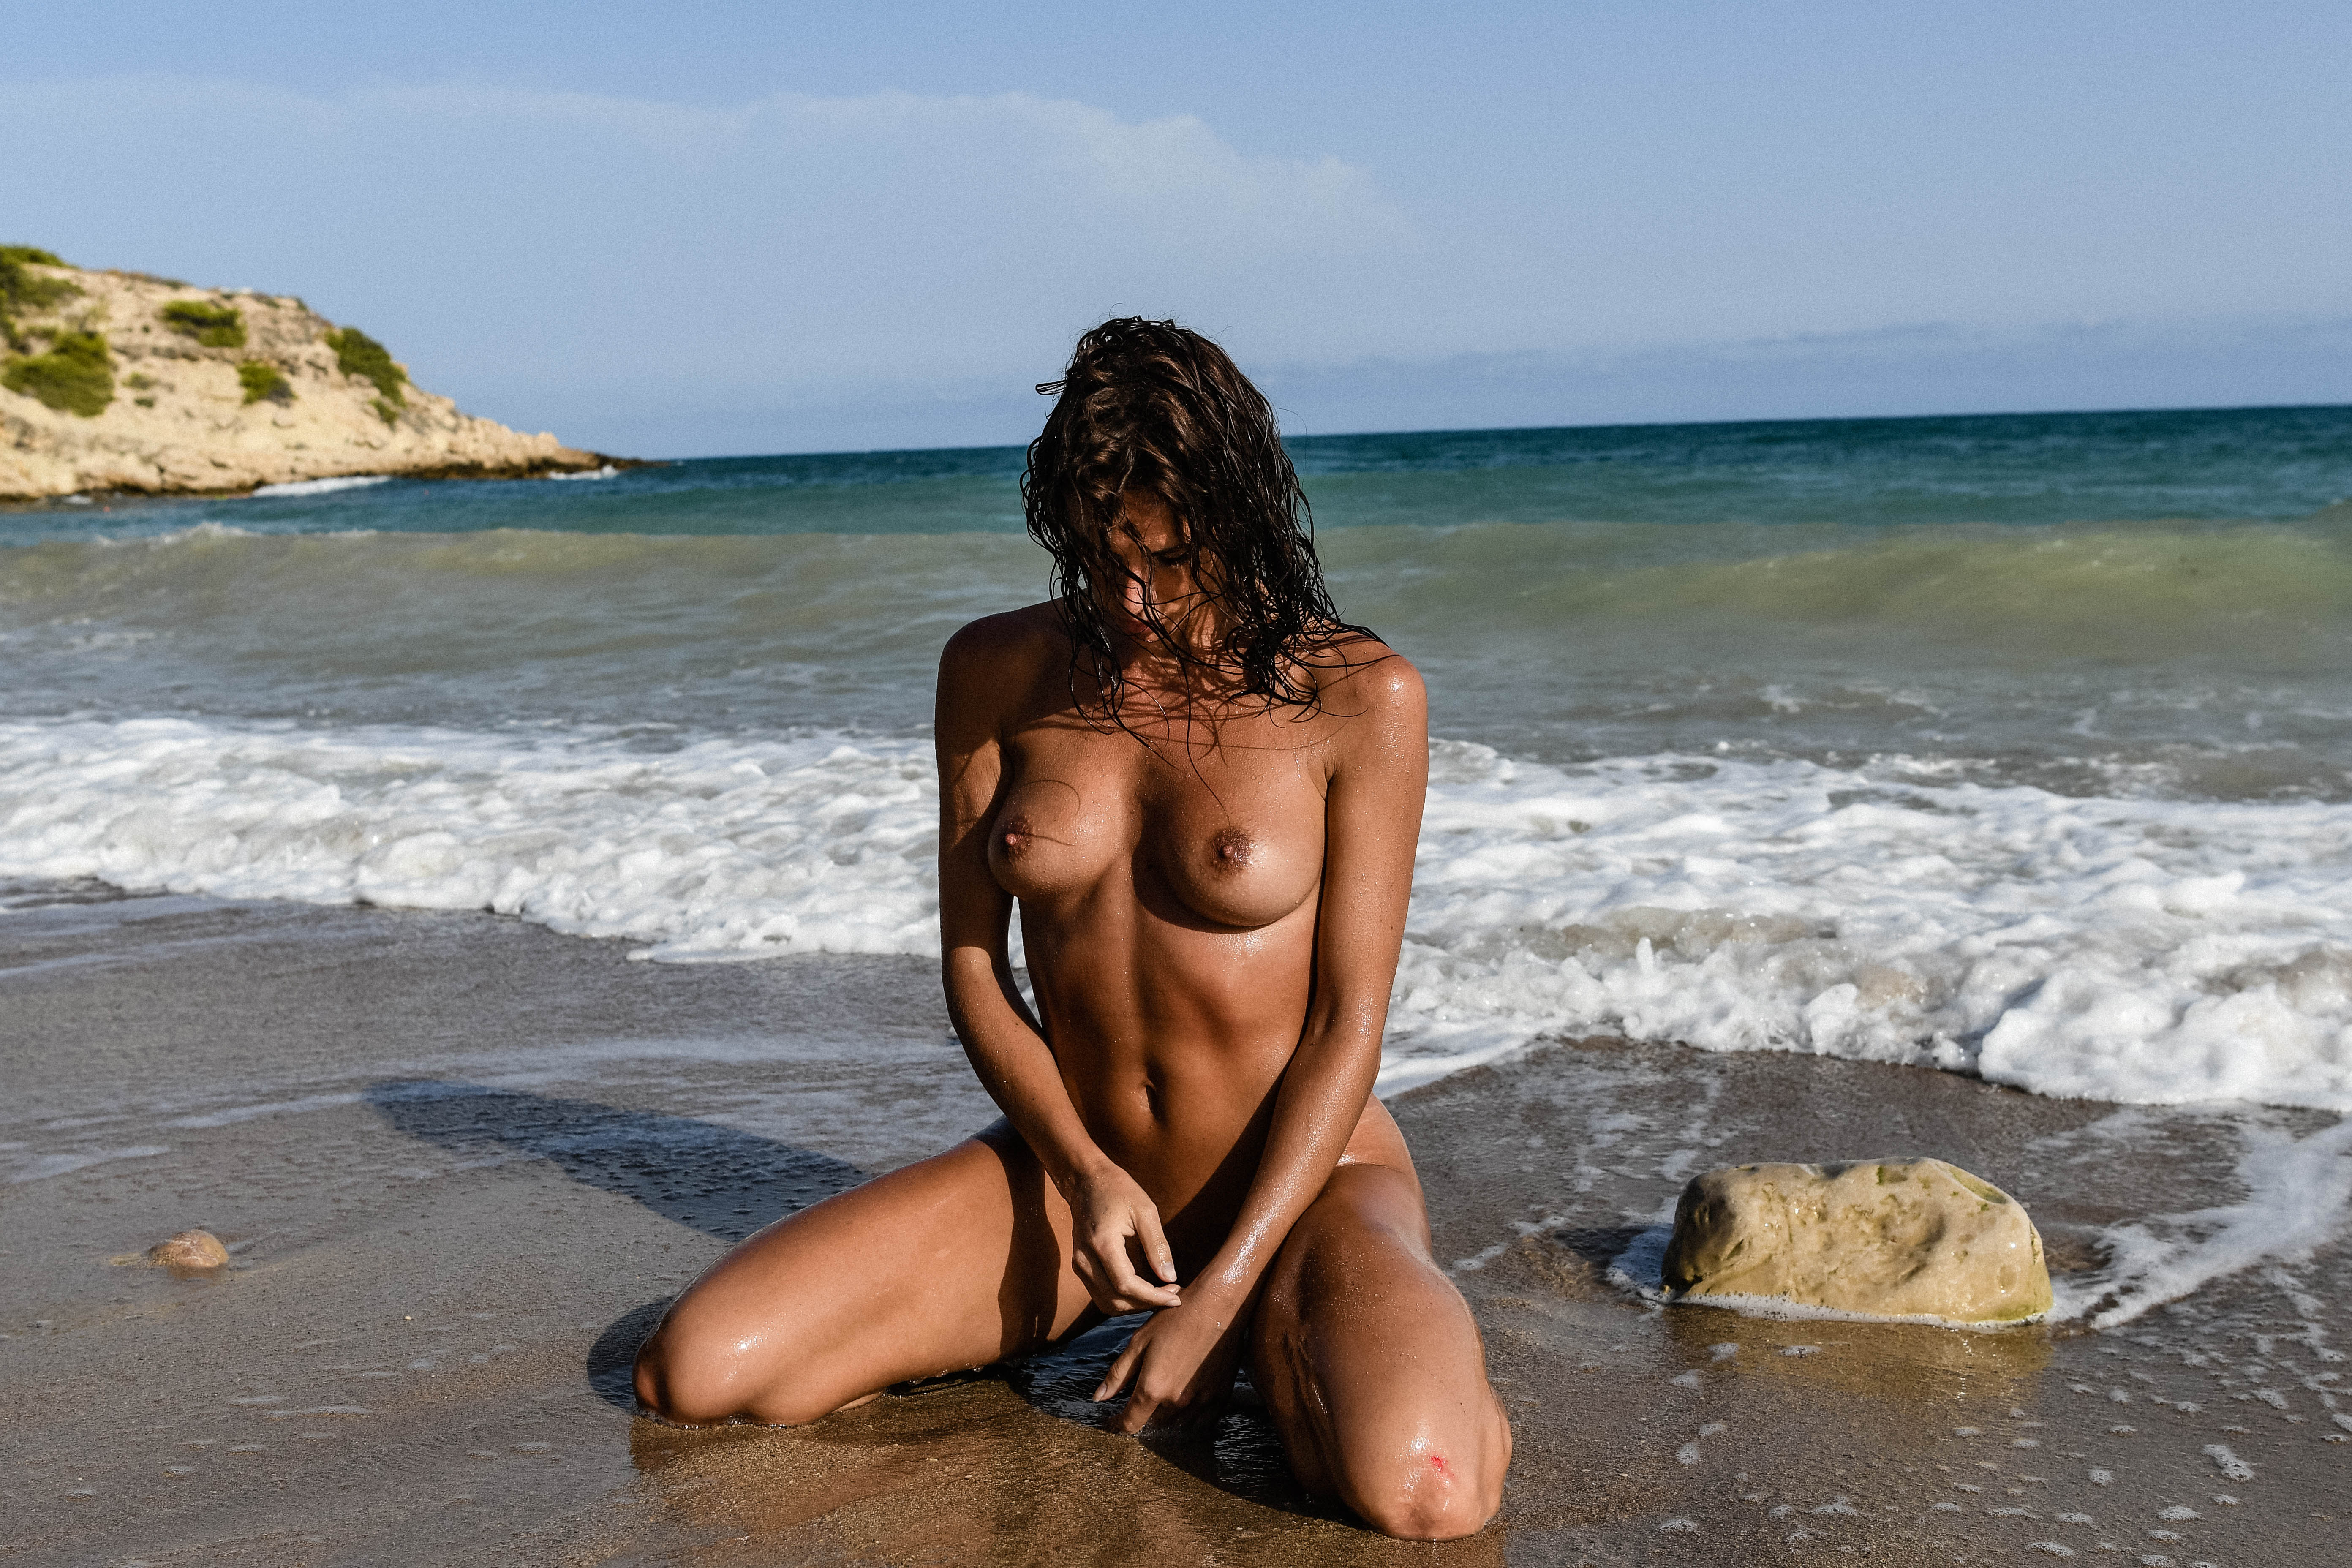 Fluvia lacerda nude sexy new images